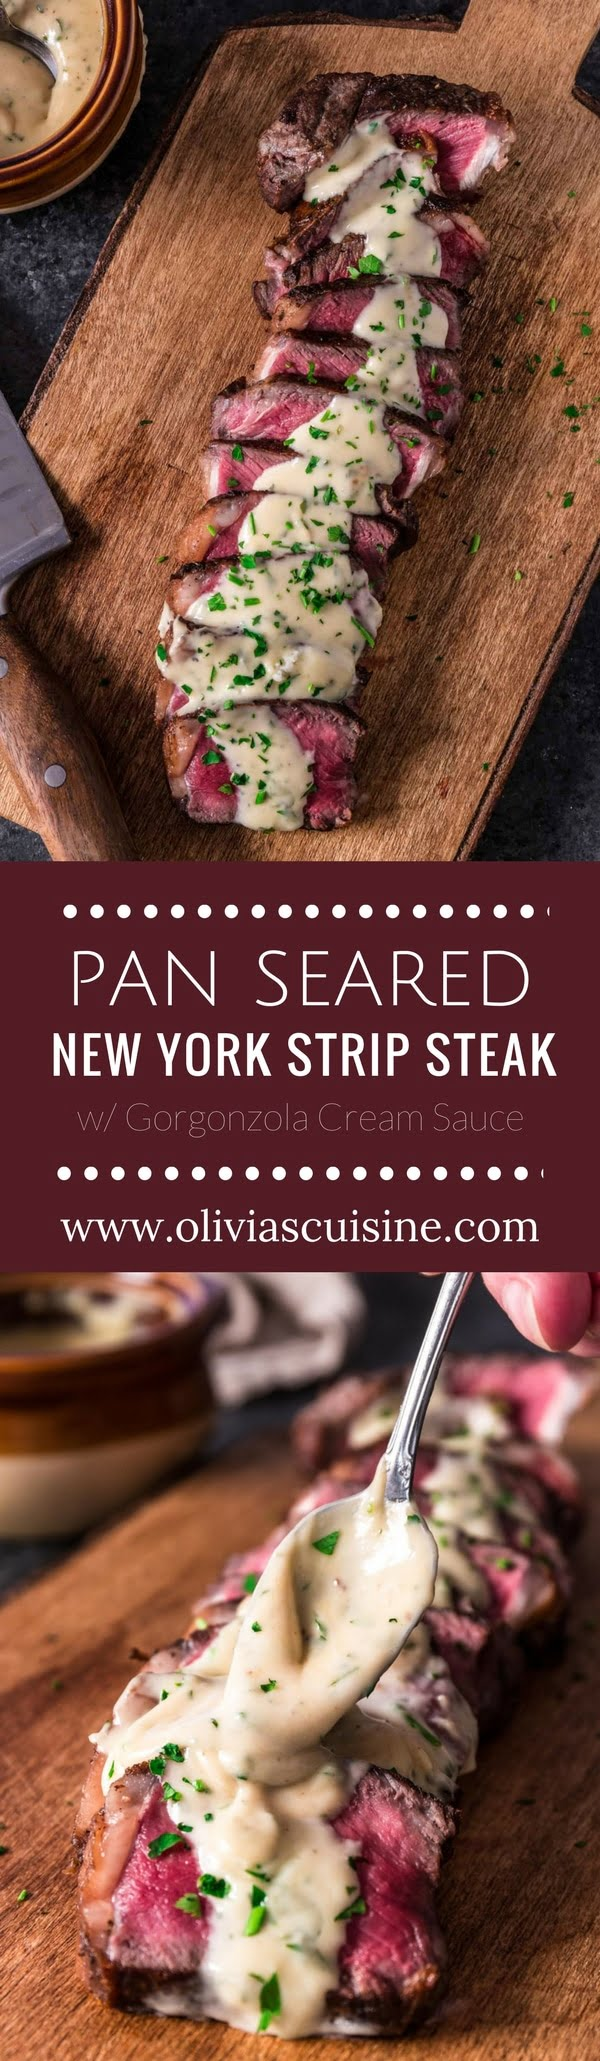 Pan Seared New York Strip Steak with Gorgonzola Sauce | www.oliviascuisine.com | No need to go to a steakhouse to enjoy a juicy New York Strip Steak, cooked to perfection.Follow my tips and you canmake a superb steak dinner right at home, on your stove, in less than 30 minutes! The buttery Gorgonzola Cream Sauce is optional, but you'd be crazy to skip it.(Recipe and food photography by @oliviascuisine.)